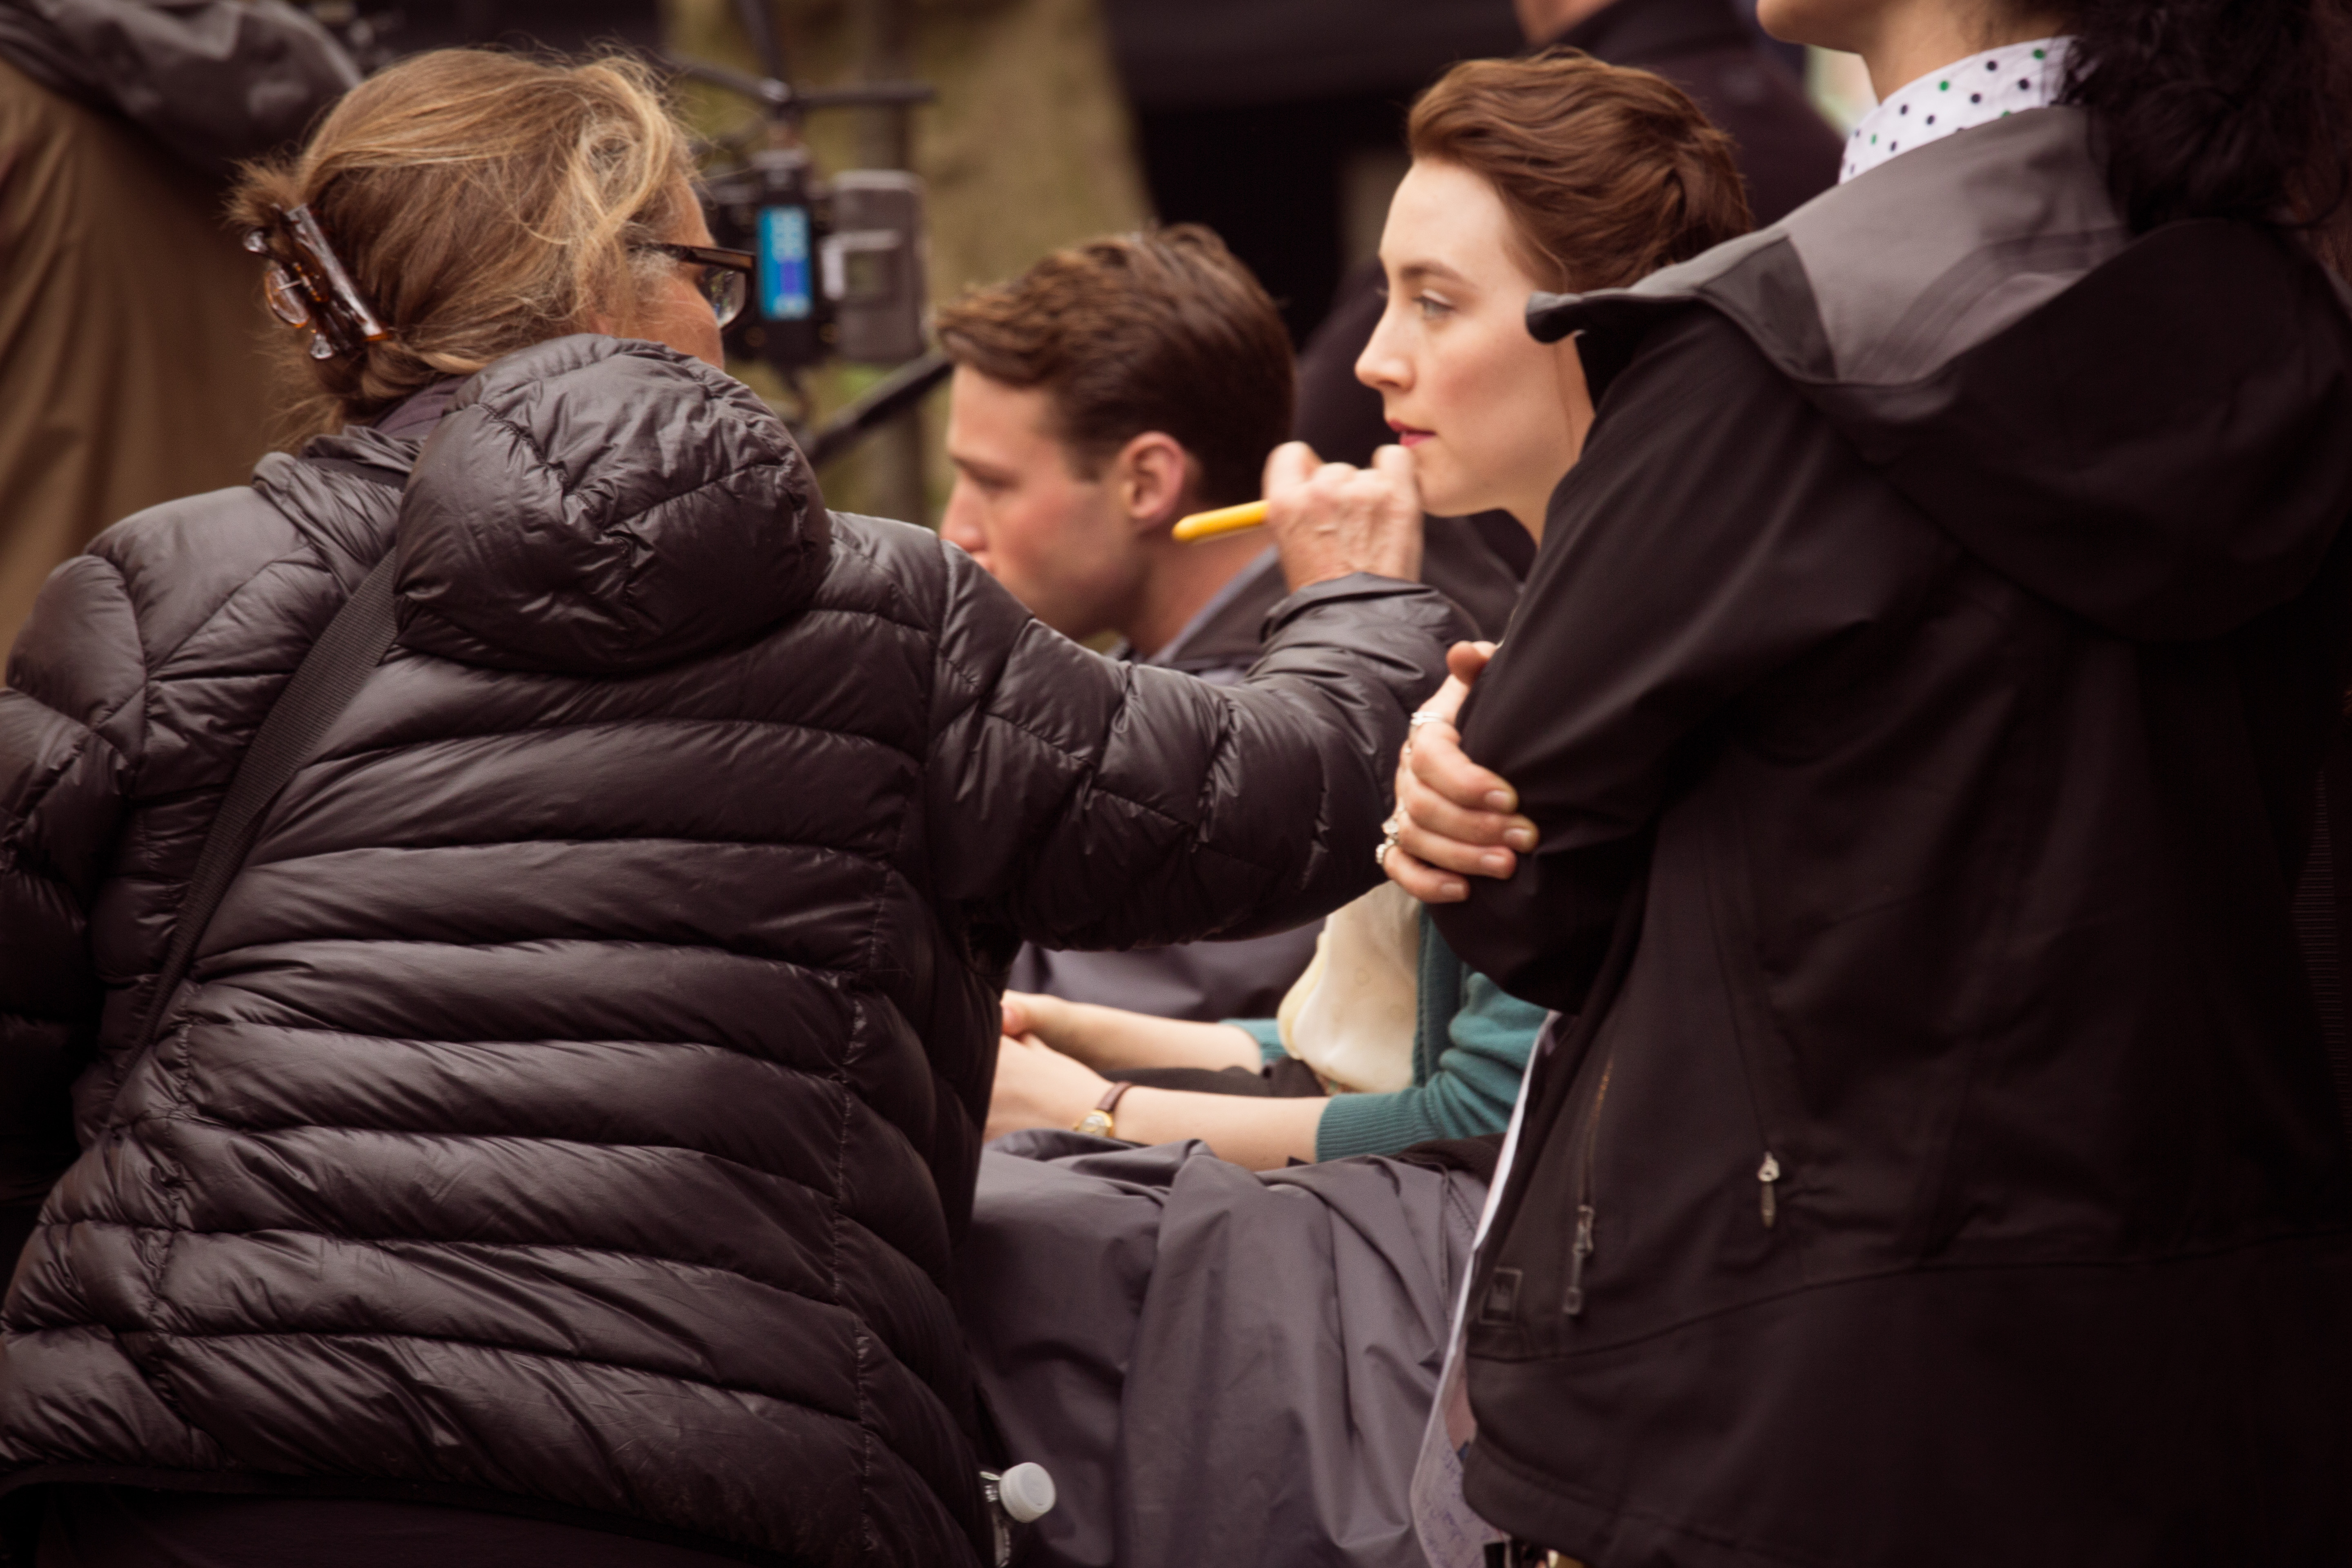 Photo: movie set photographer, Irish Actress, Make-up Artist, Behind the scenes, film industry, photographers, Irish actress, film actress, movie, Saoirse Ronan